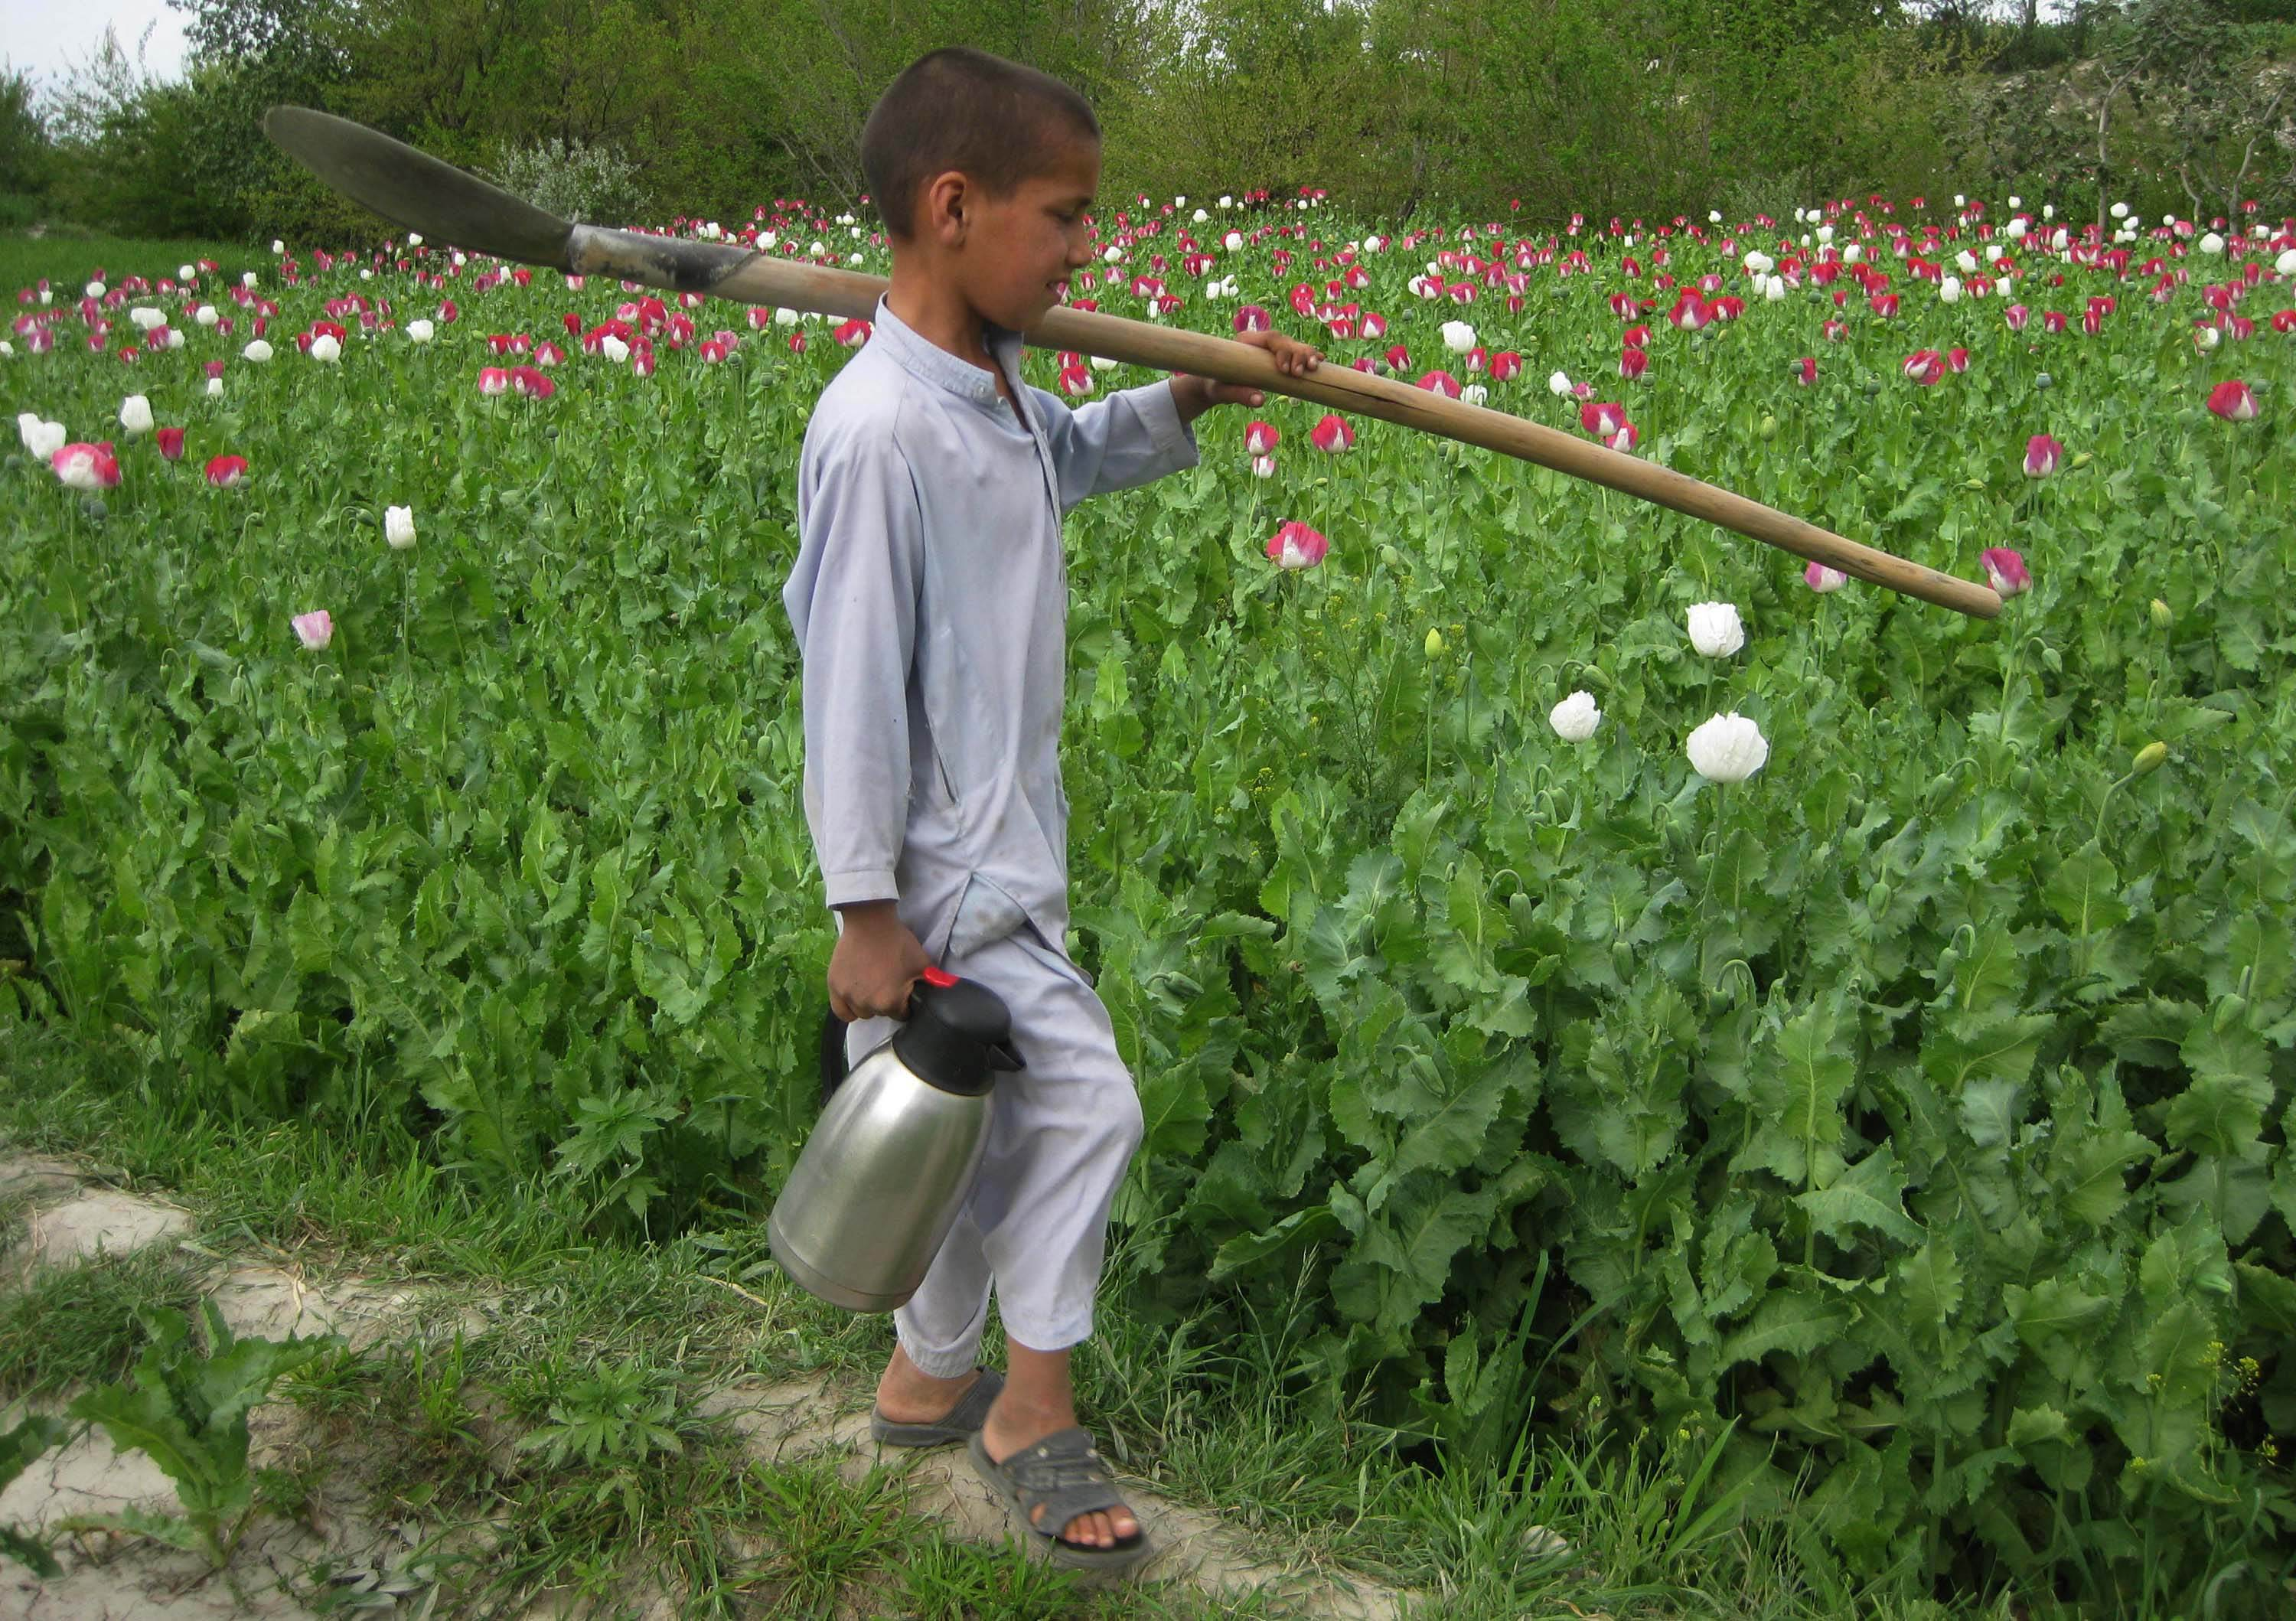 An Afghan boy carries a flask as he works in a poppy field in Khogyani district, eastern Nangarhar province on April 6, 2013.  Poppy cultivation is expected to increase in both eastern and western provinces of the country, though will remain at a much lower level of cultivation as compared to Helmand and Kandahar provinces, the United Nations office on Drugs and Crimes (UNODC) said in its 2012 report.